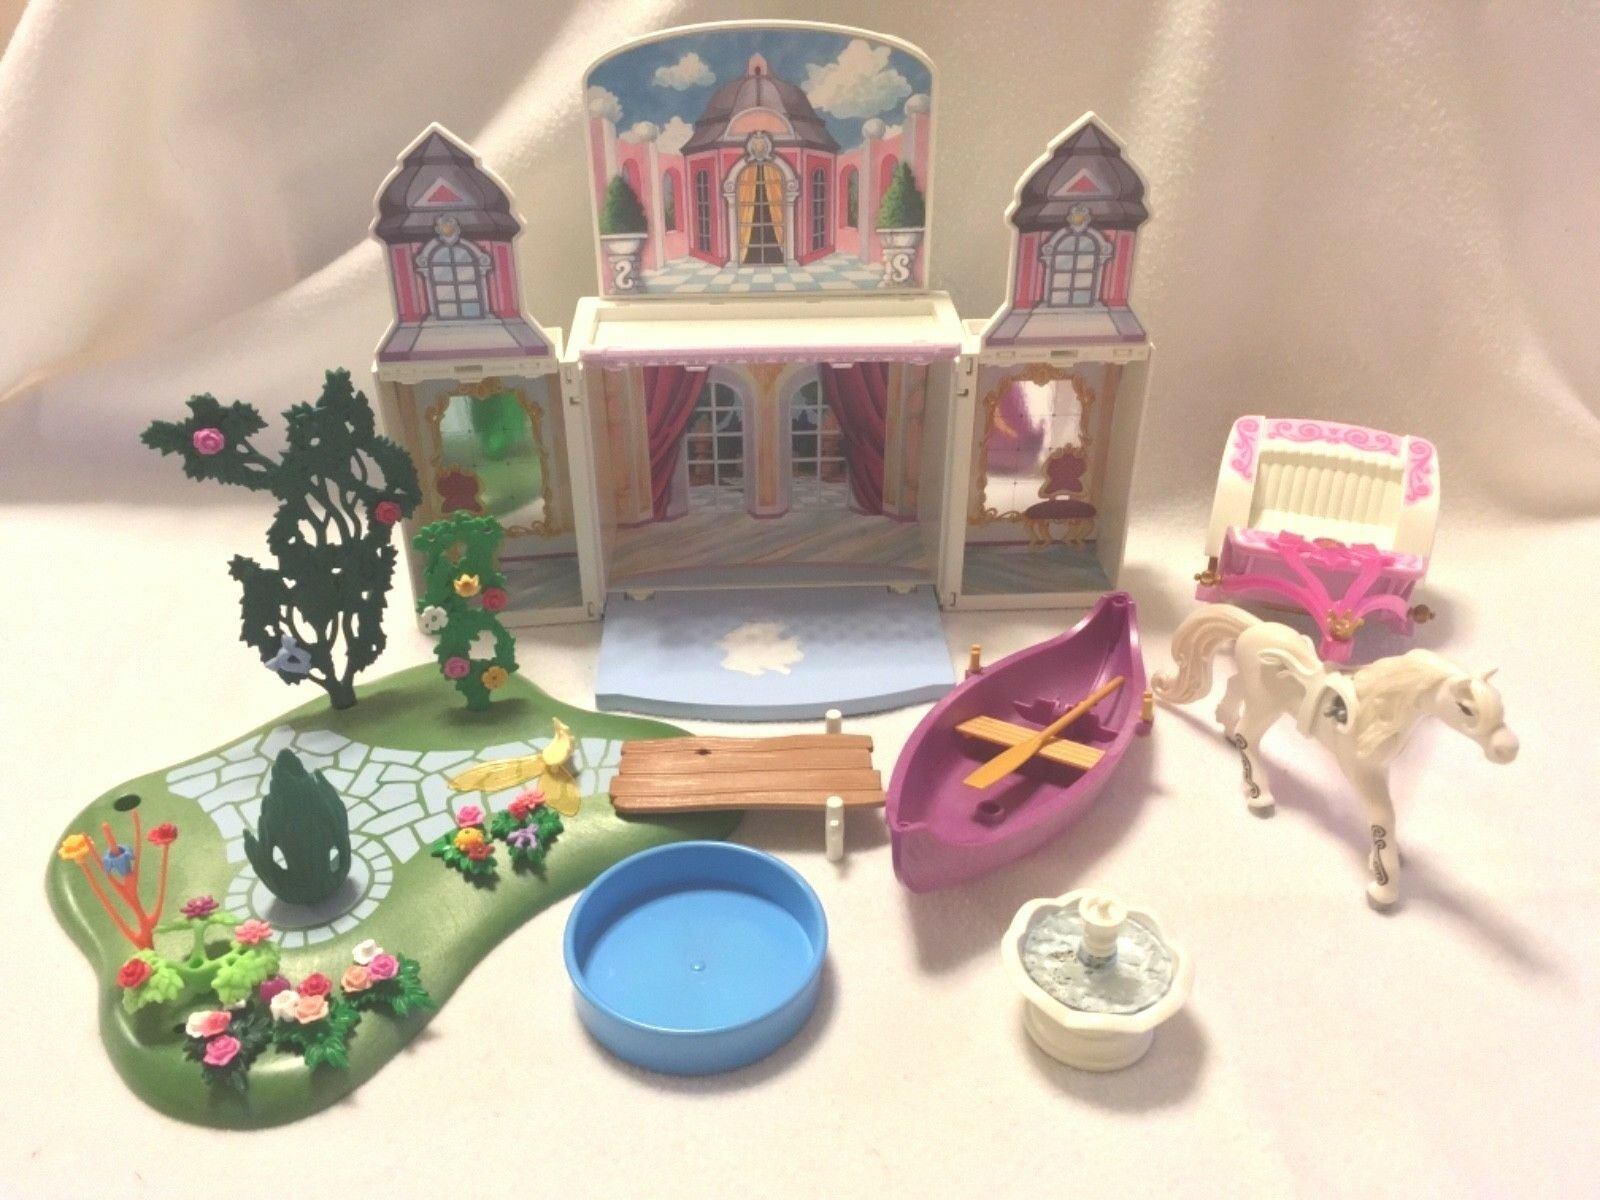 155 Items Playmobil Lot - Princess Castle Royal Fantasy Boat Fountain Unicorn